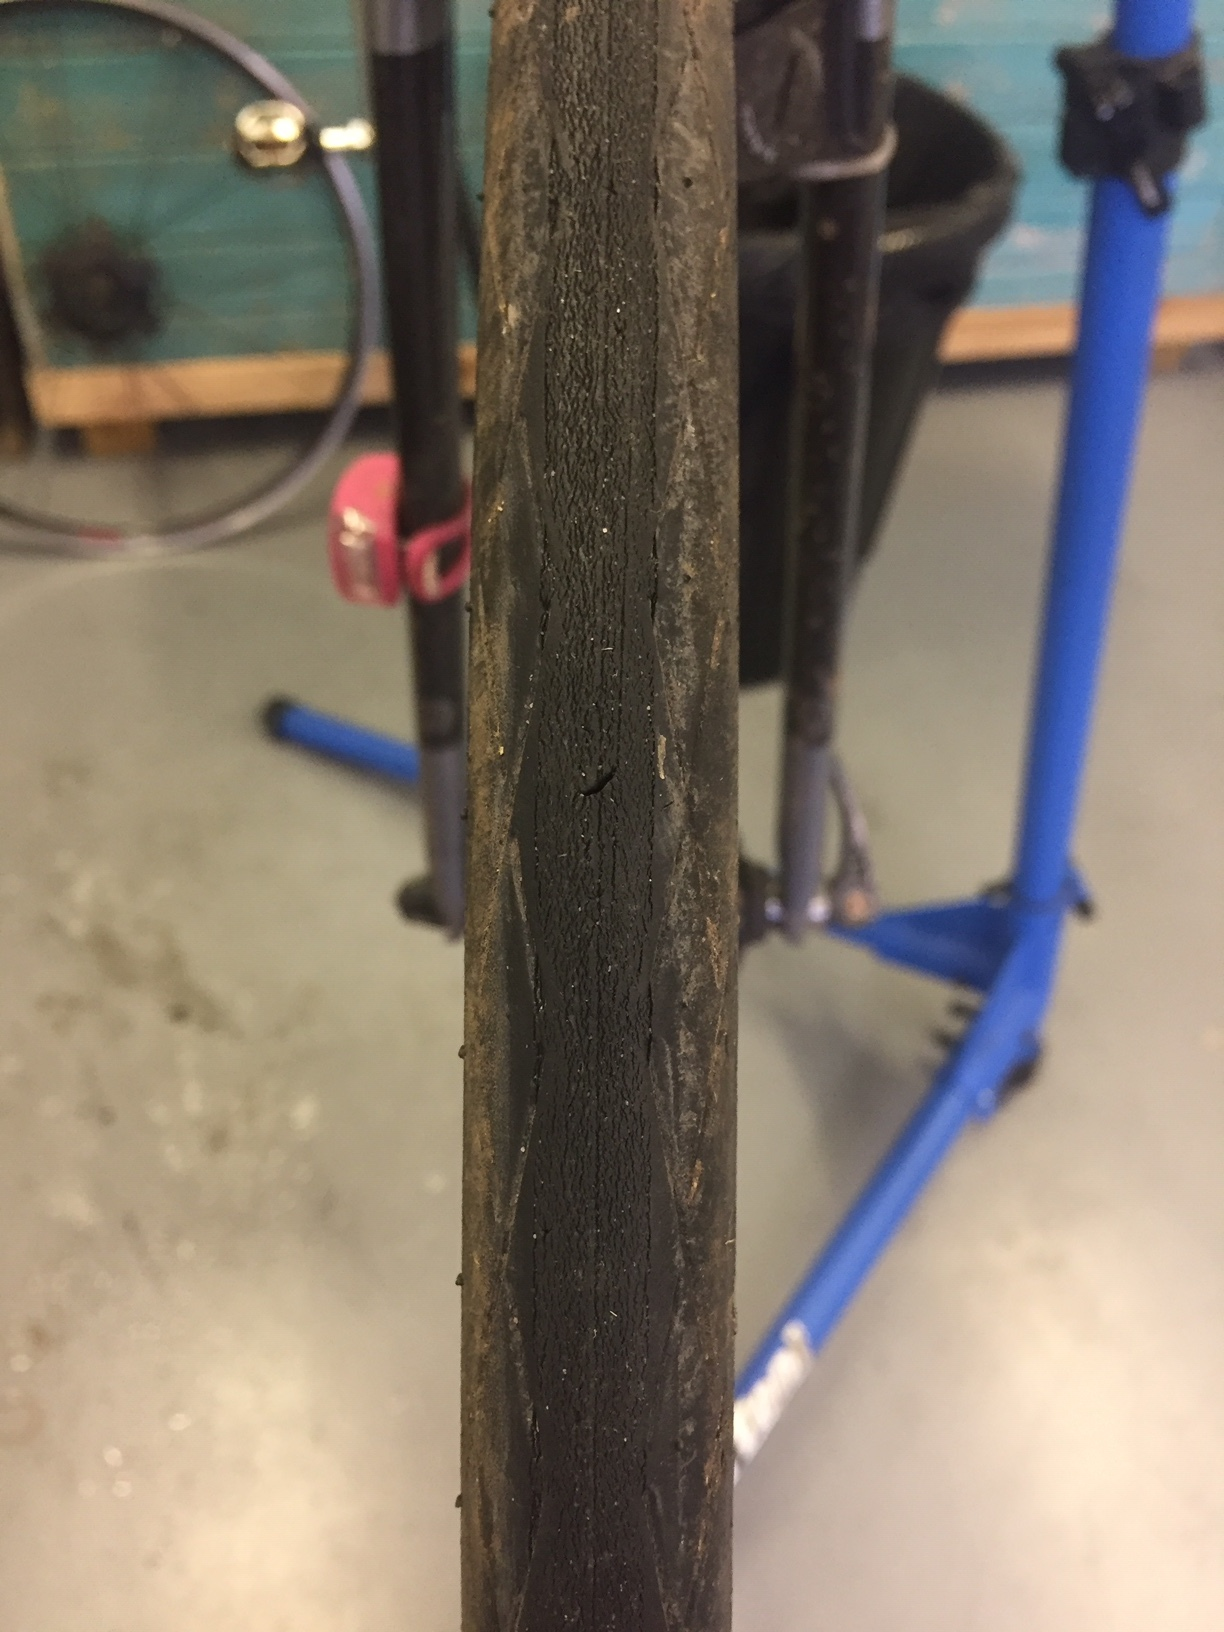 We look for cuts in tyres —> - You can also see tyre 'fatigue' - tiny cracks in the tyre - another sign it's ready to be replaced.